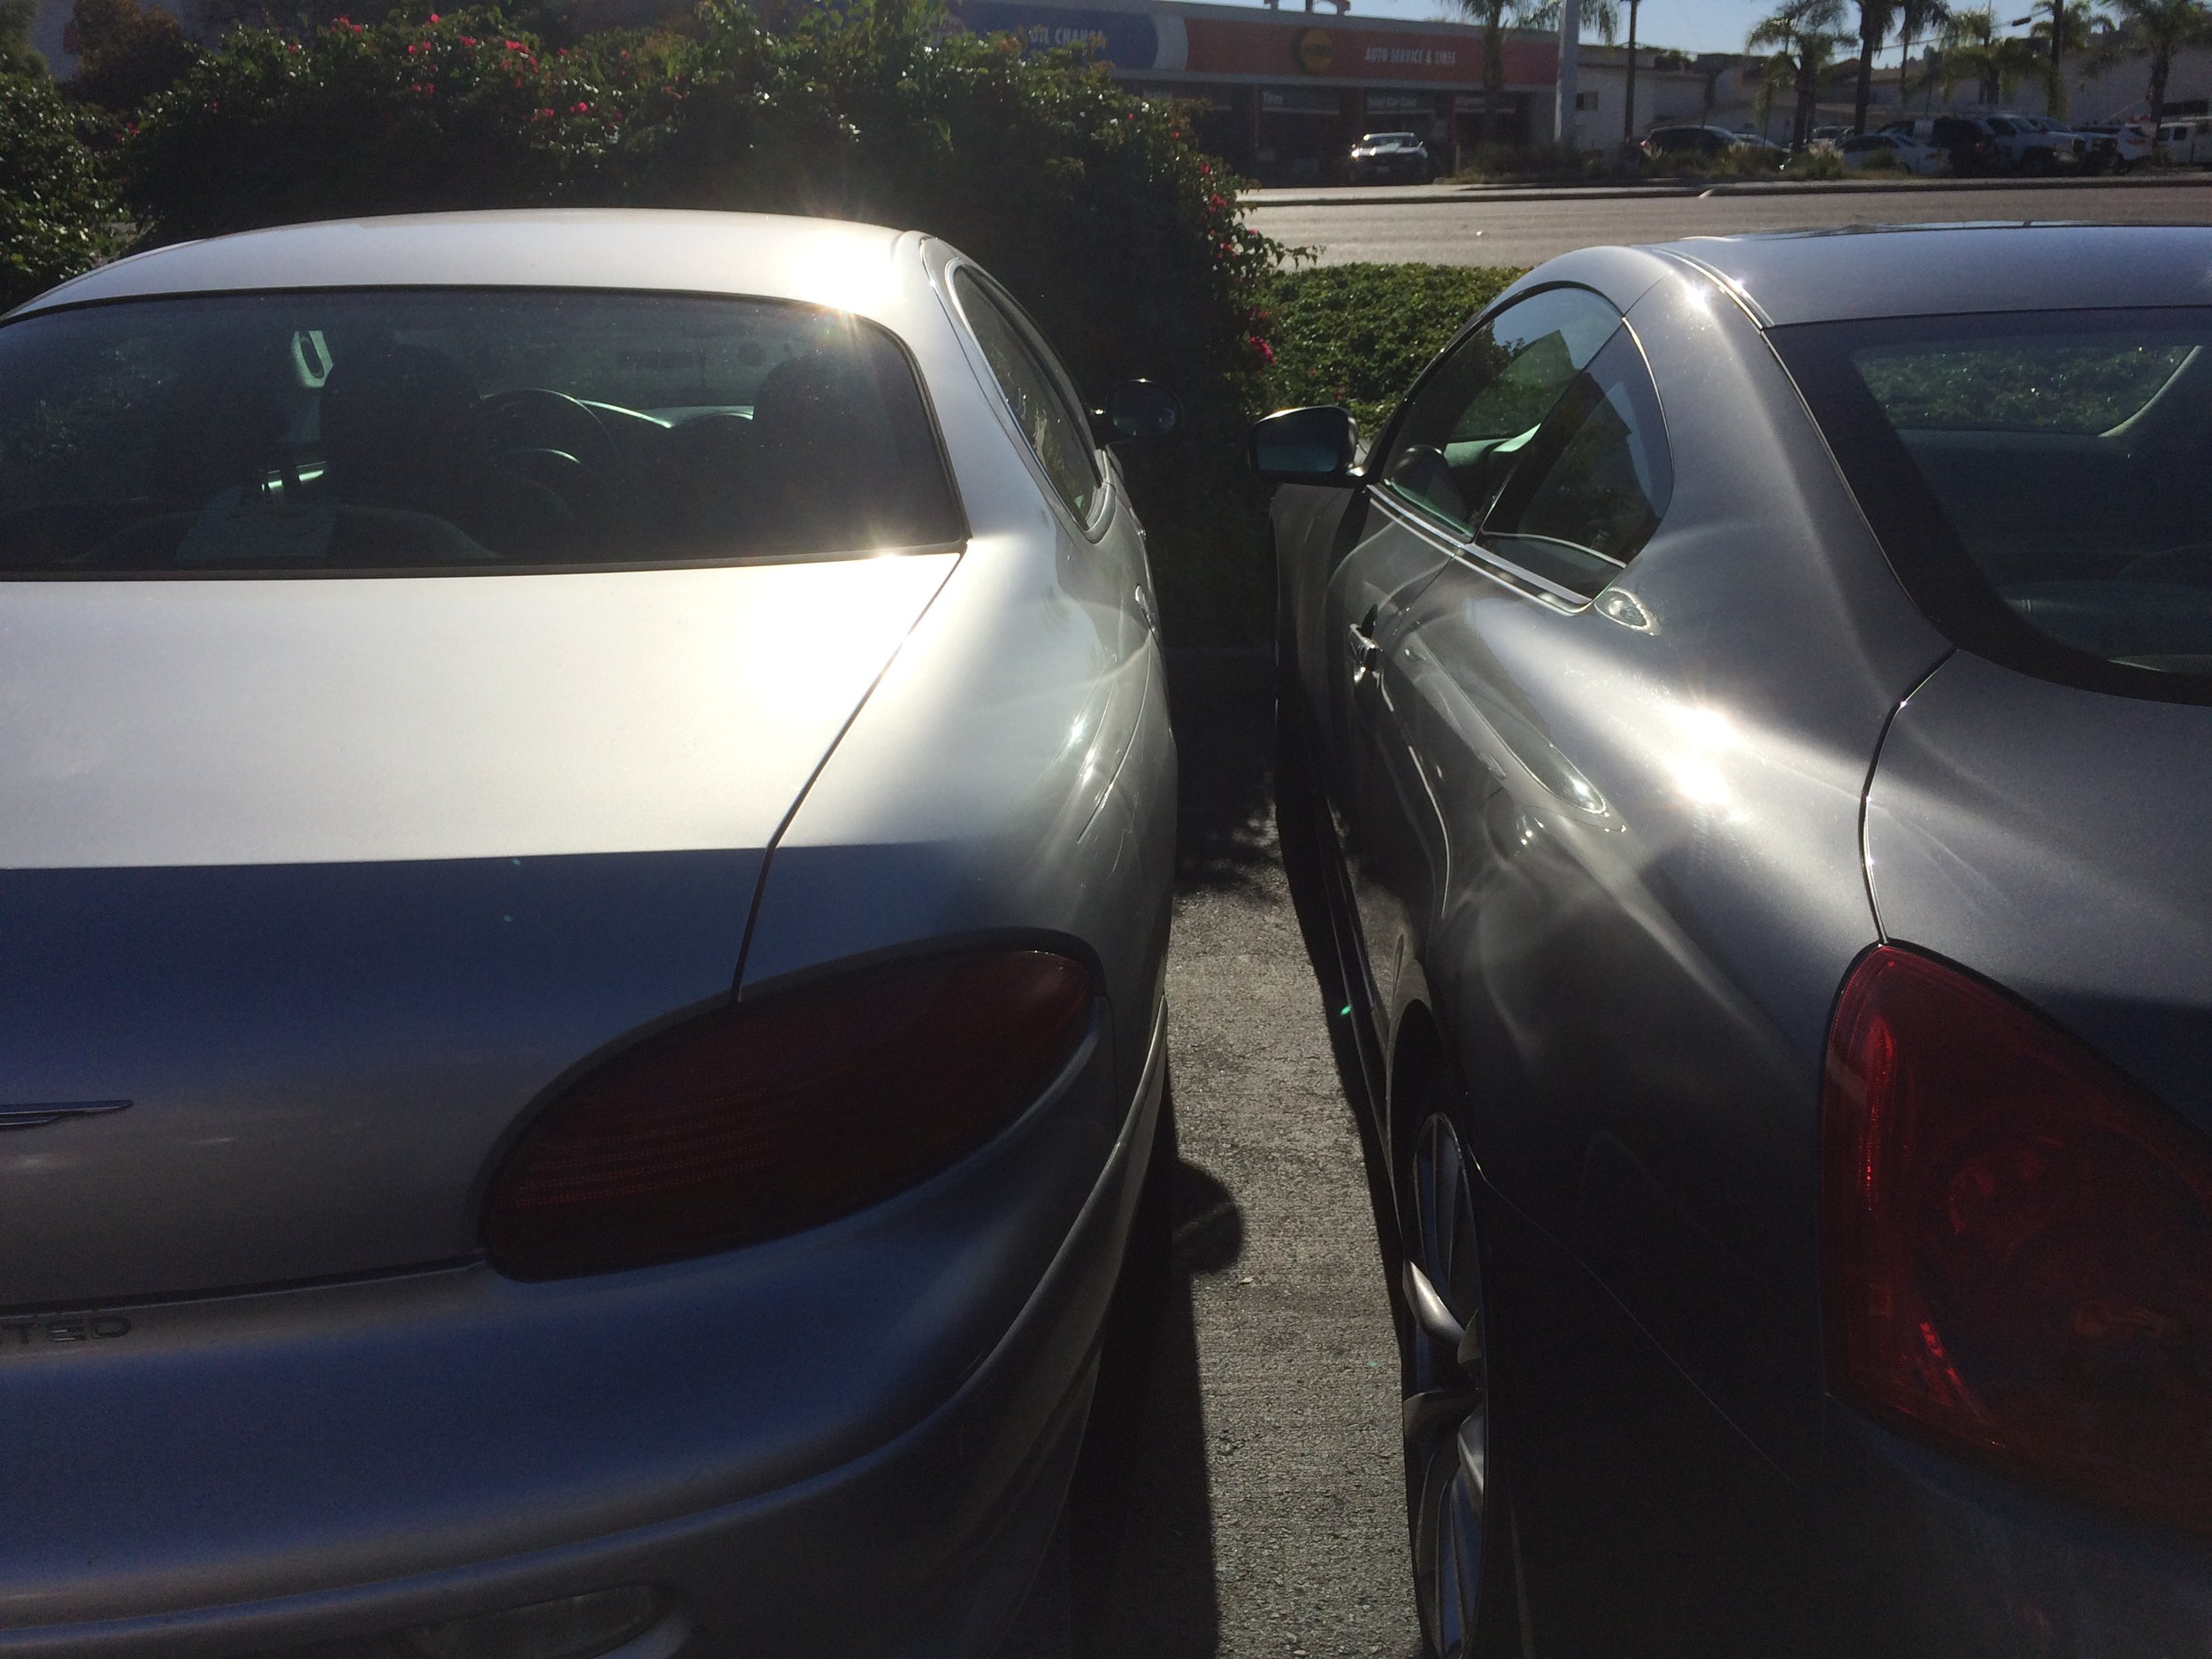 A coffee shop employee parked so far over the line that she blocked my car door.